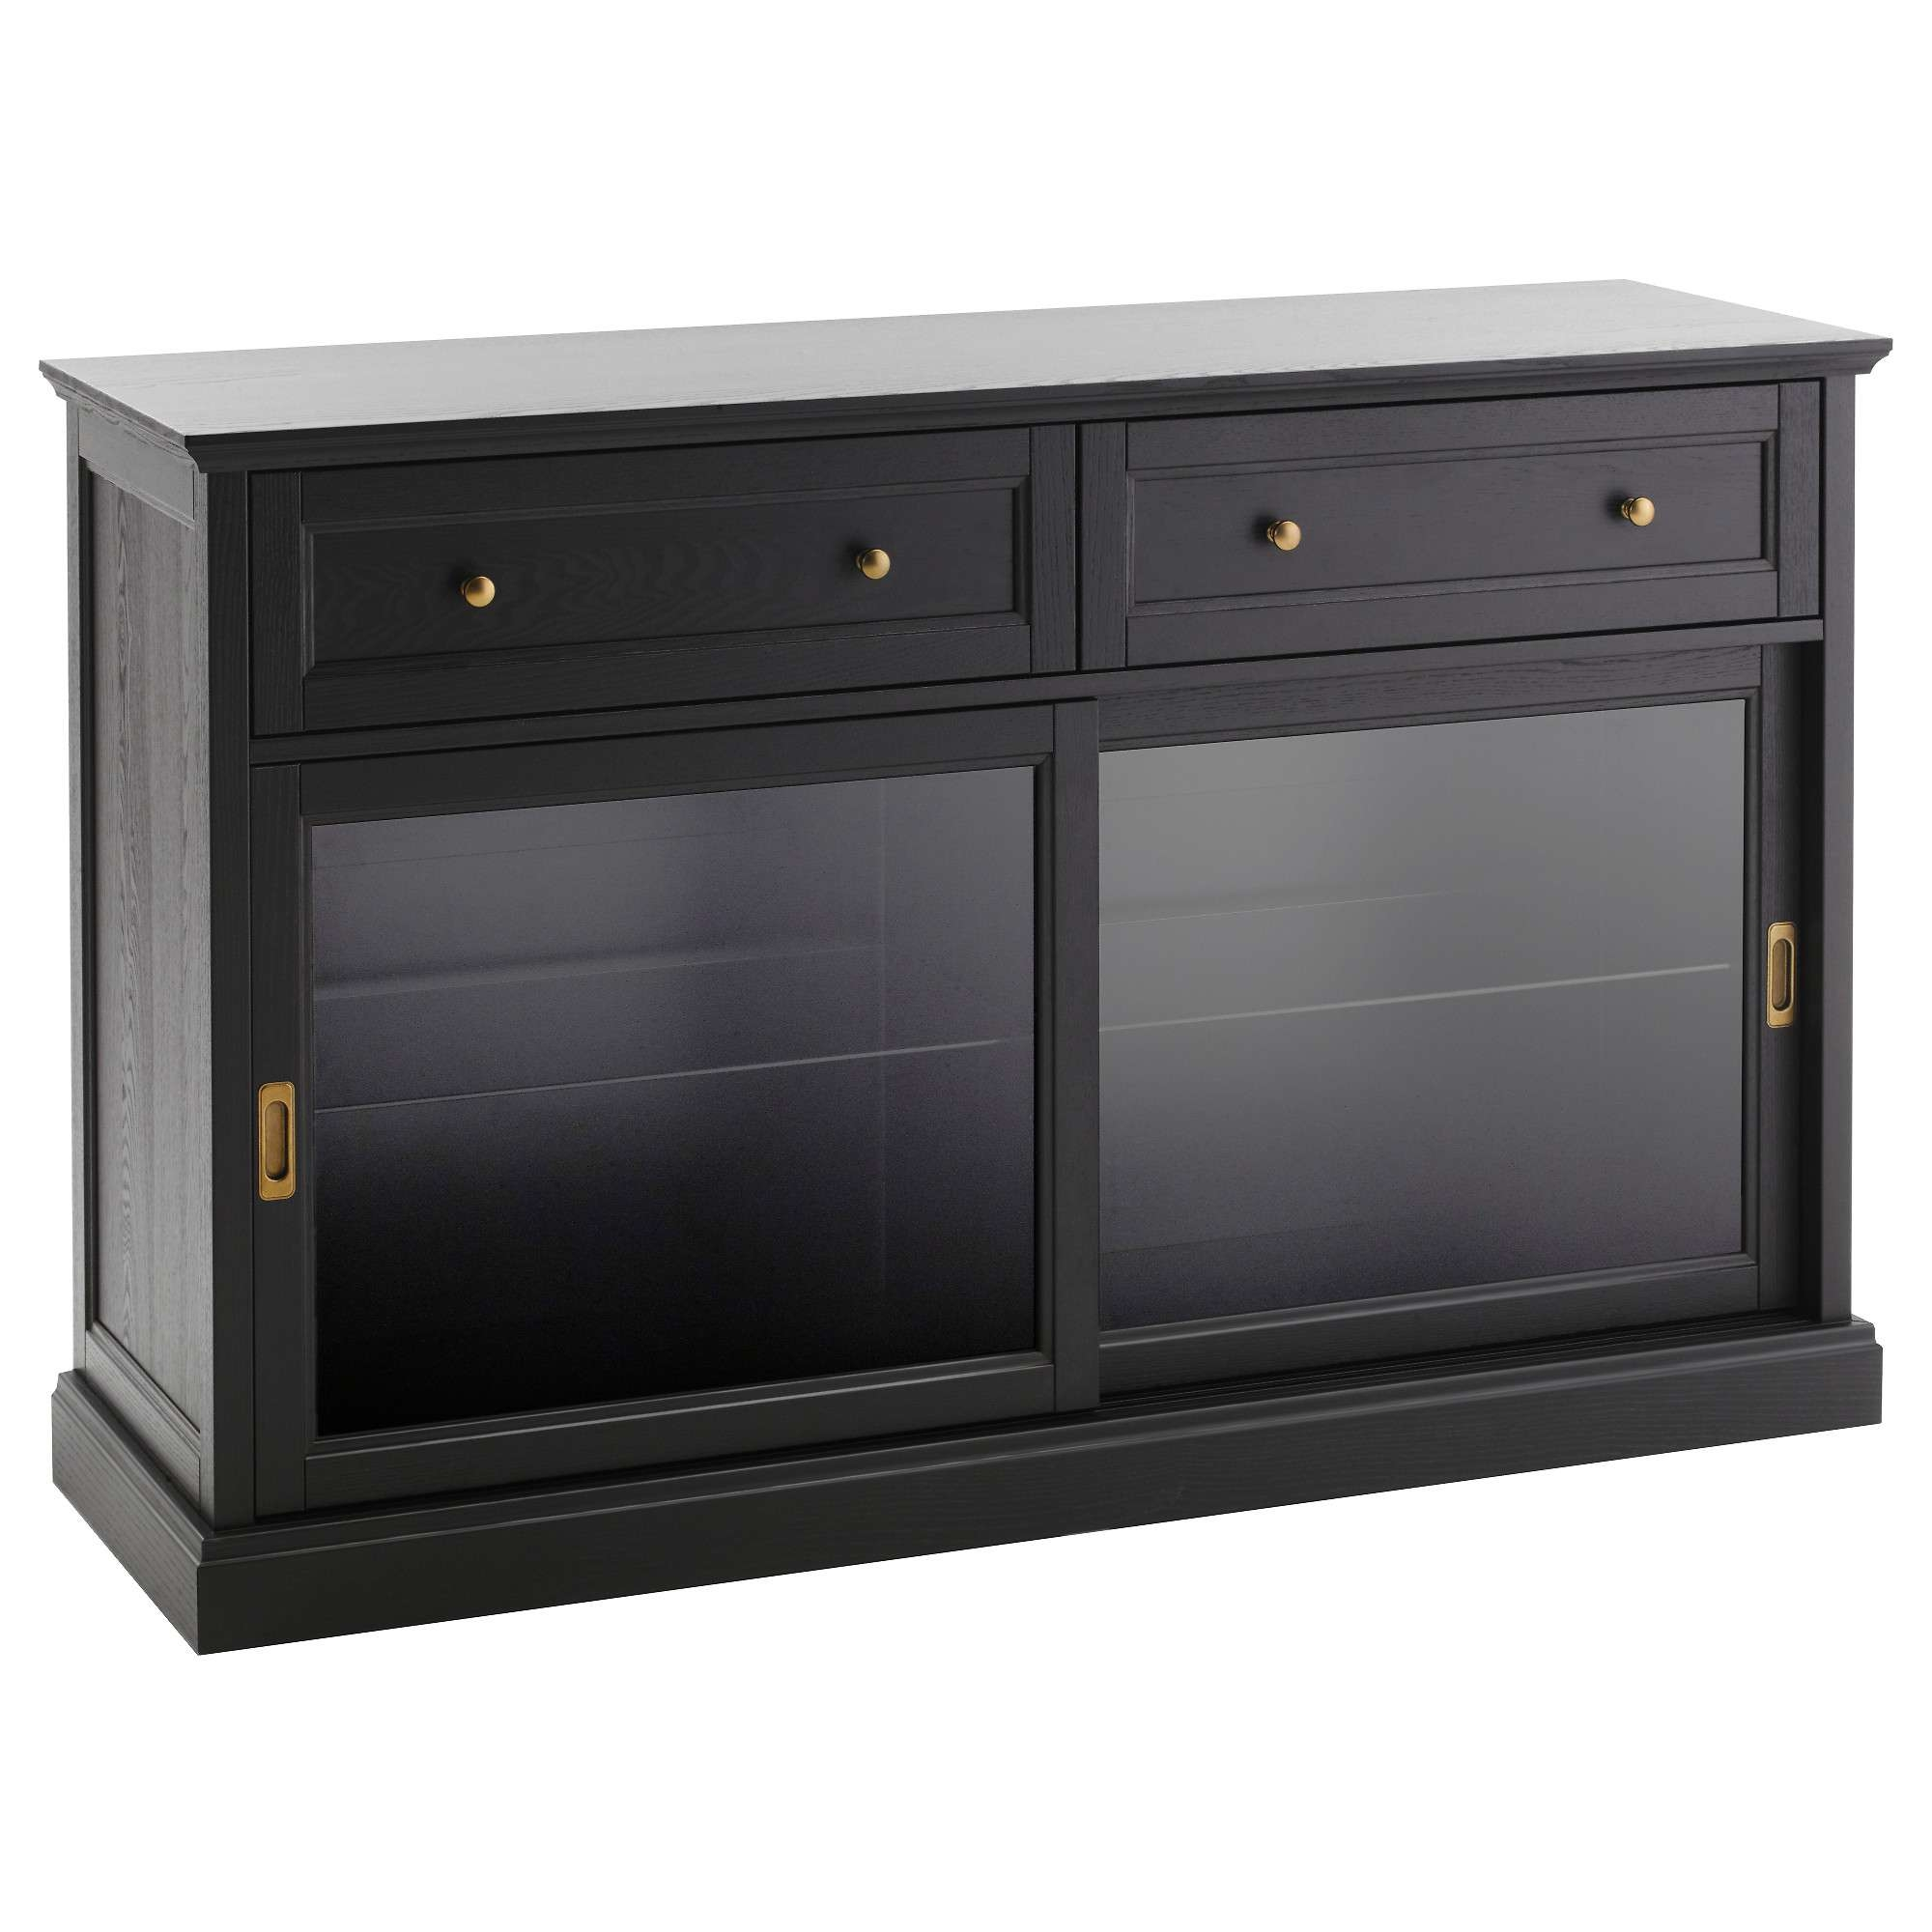 Buffet Tables & Sideboards – Ikea With Country Sideboards (View 15 of 20)